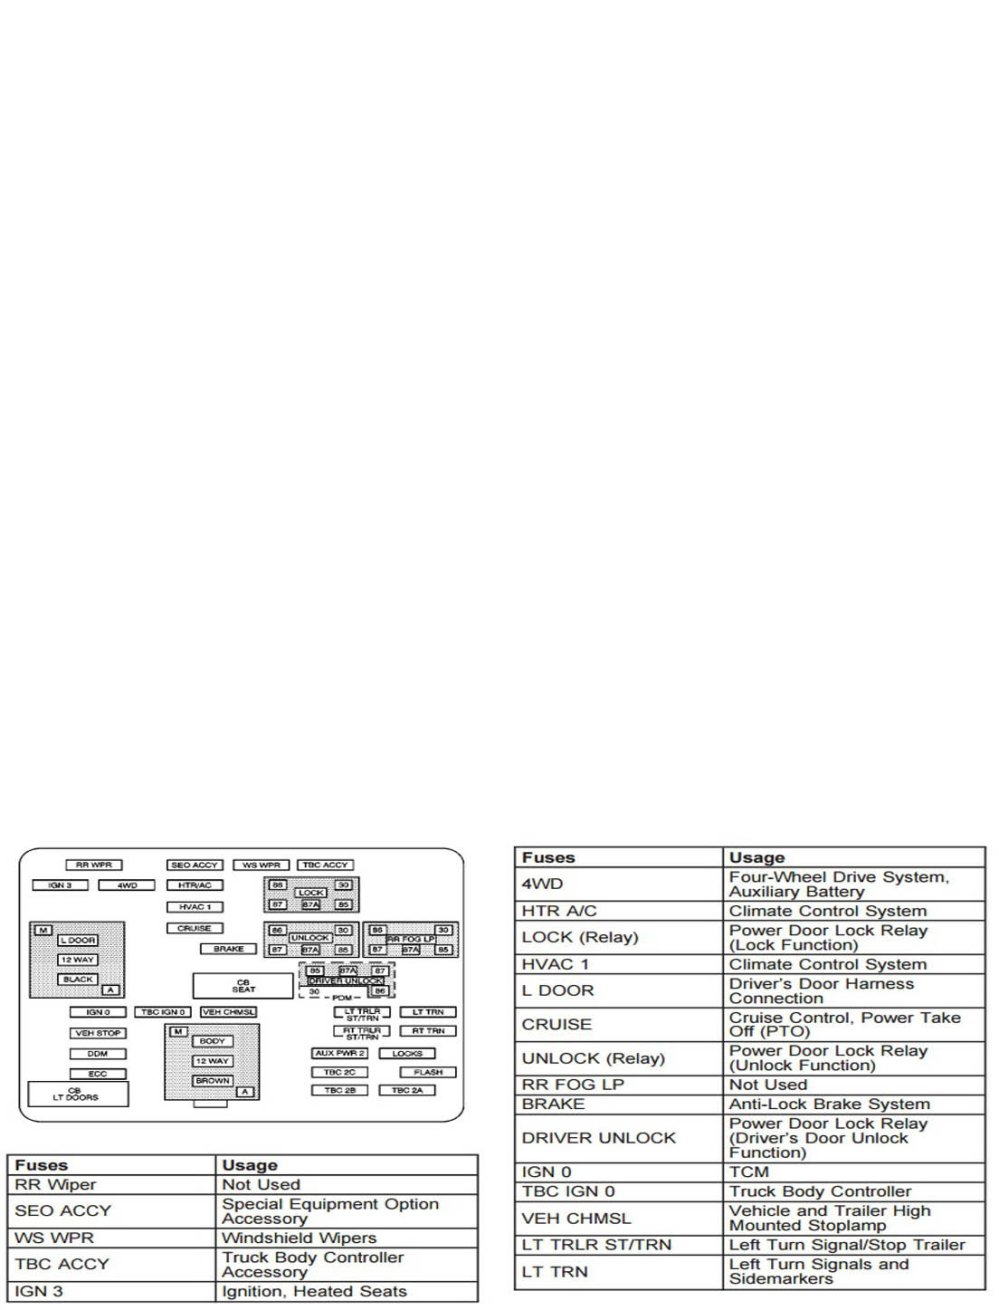 medium resolution of chevrolet silverado gmt800 1999 2006 fuse box diagram chevroletforum 2003 chevy silverado fuse box diagram explanation